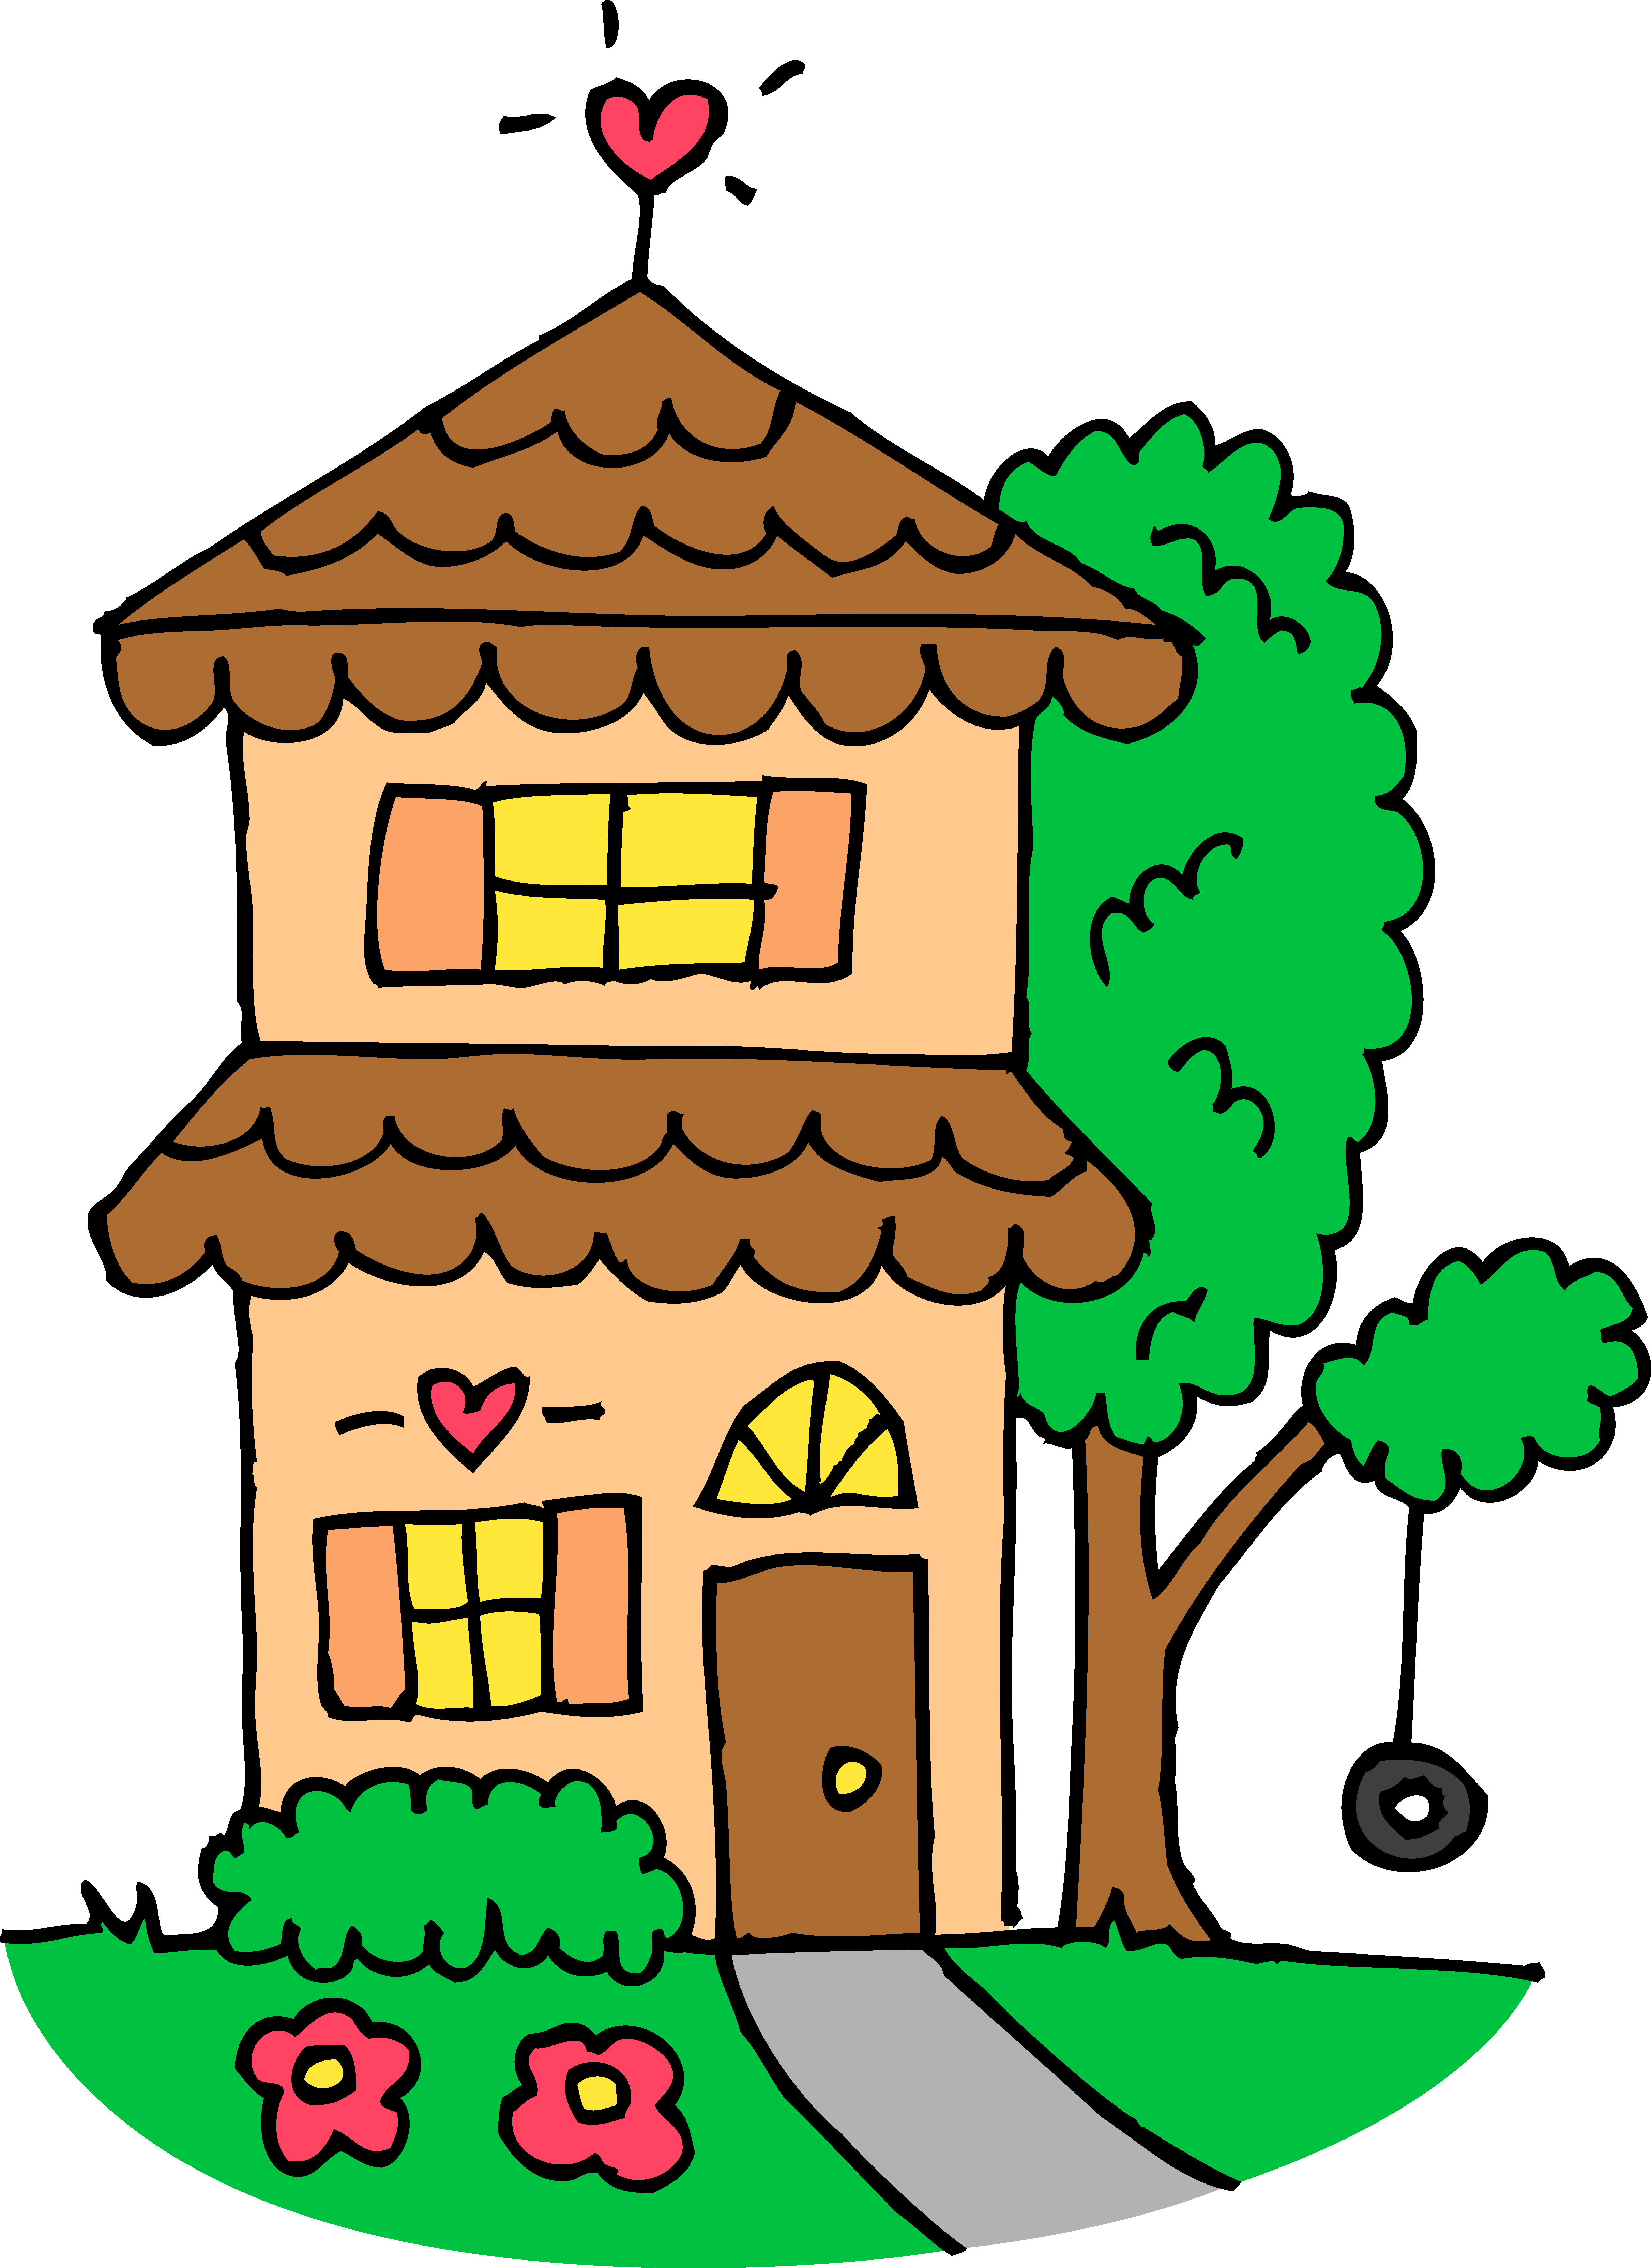 Home cliparts freeuse House free home clipart clip art pictures graphics illustrations ... freeuse